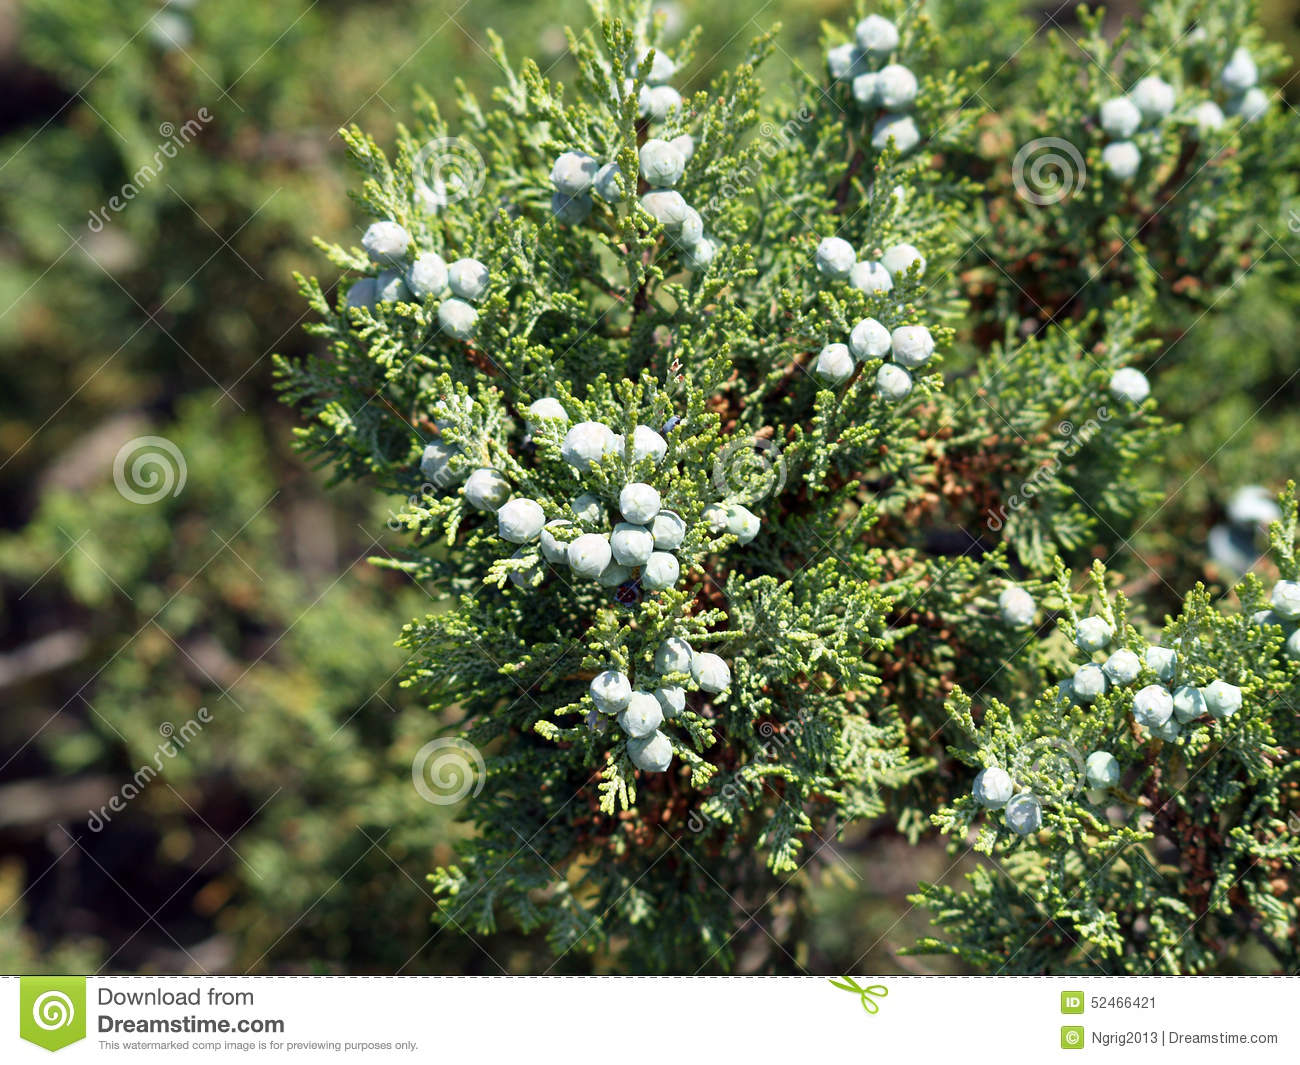 Galberries and needles of a juniperus excelsa (Crimea)